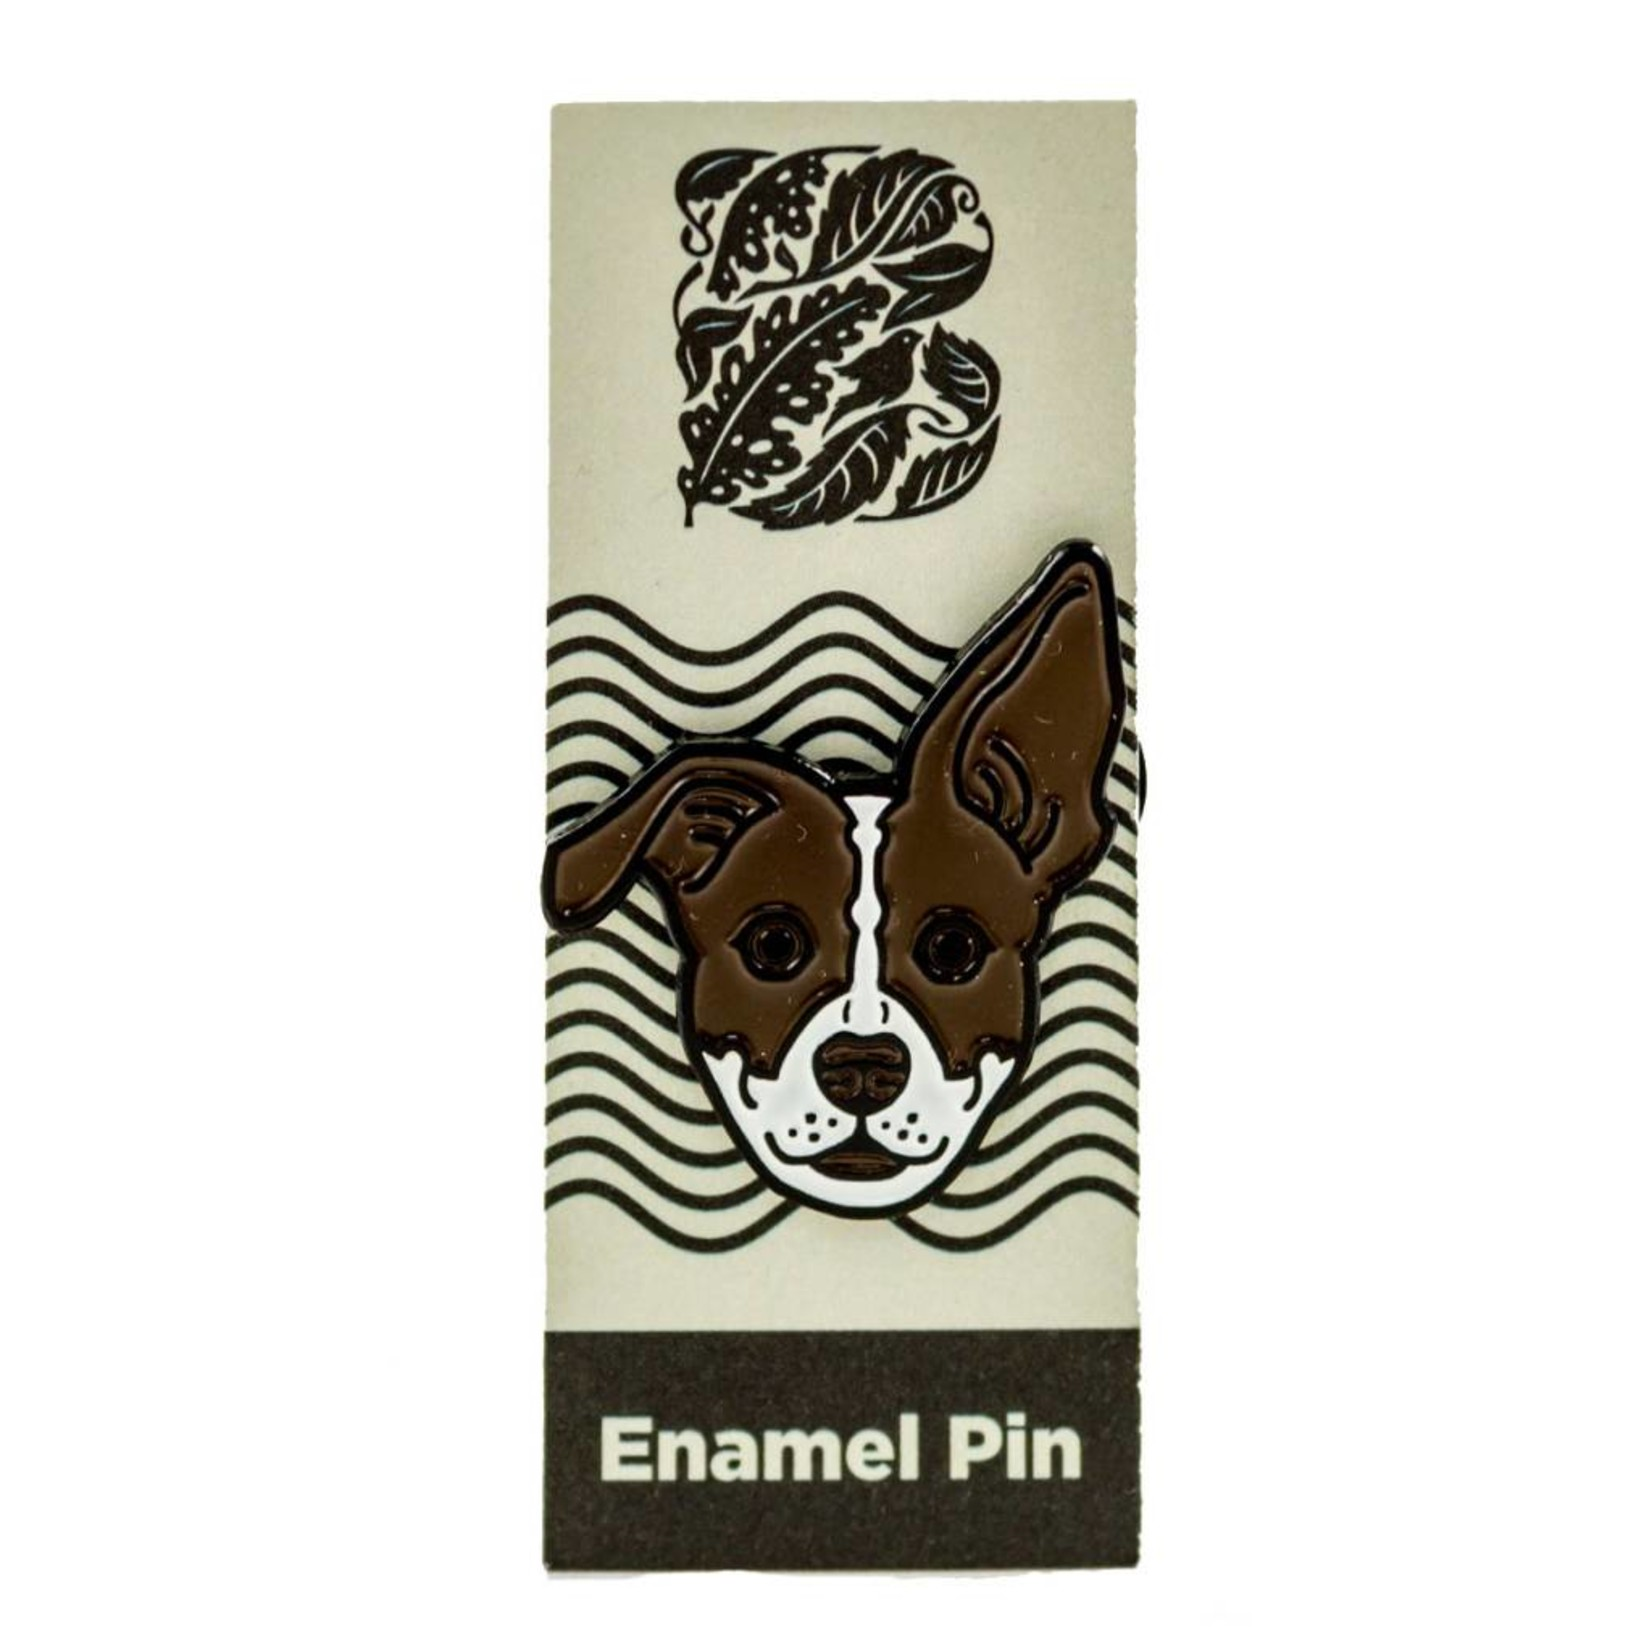 John Vogl / The Bungaloo Marmaloo Dog Enamel Pin